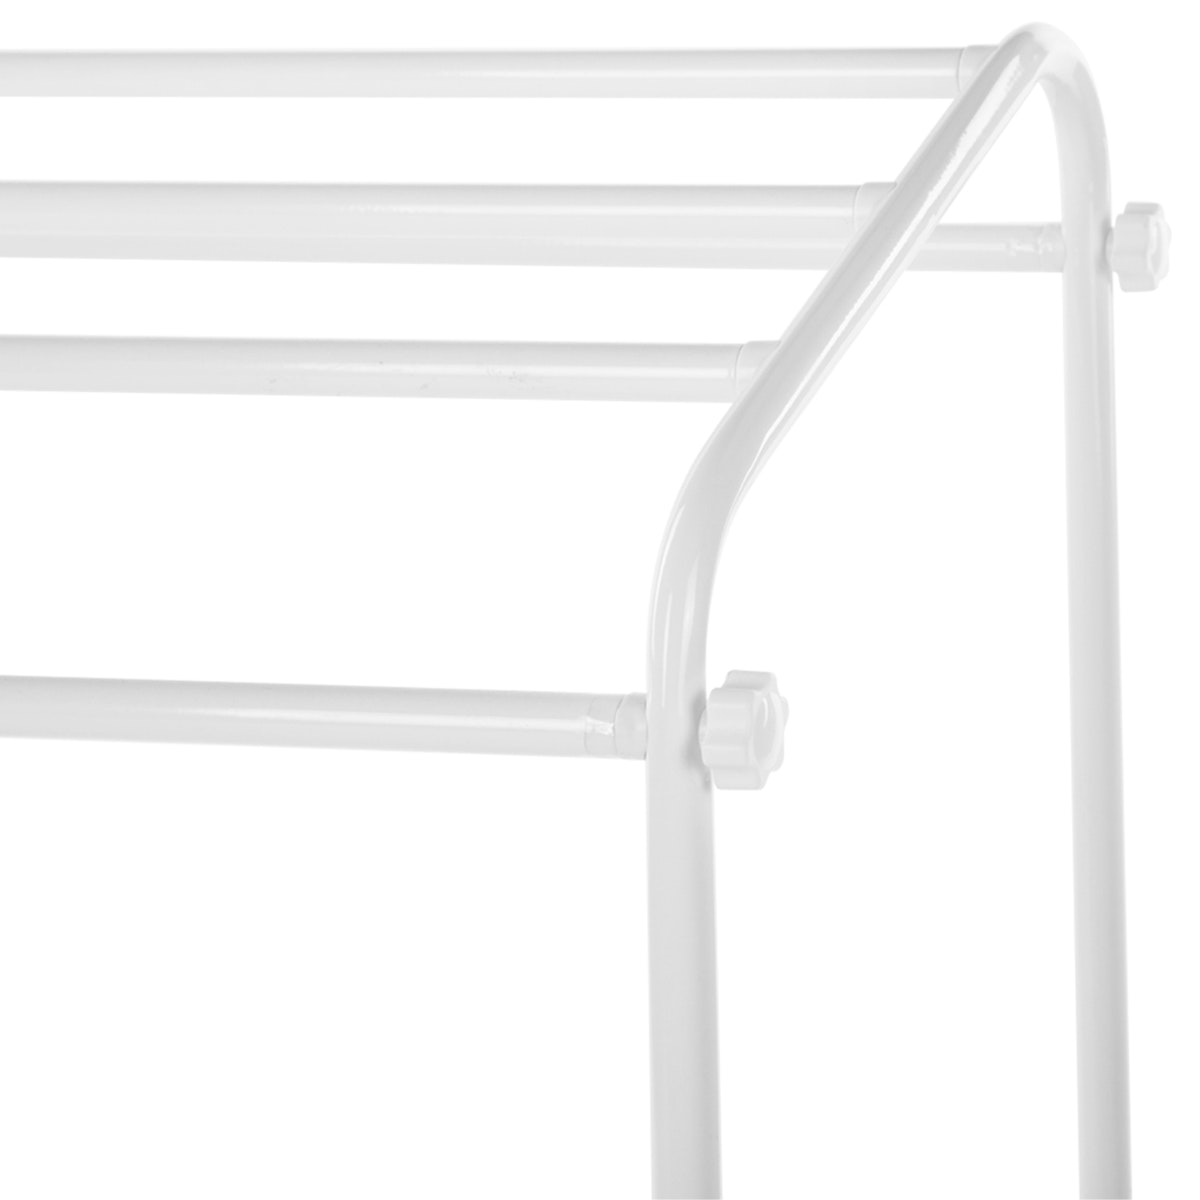 Mami1 Towel Rack M-215